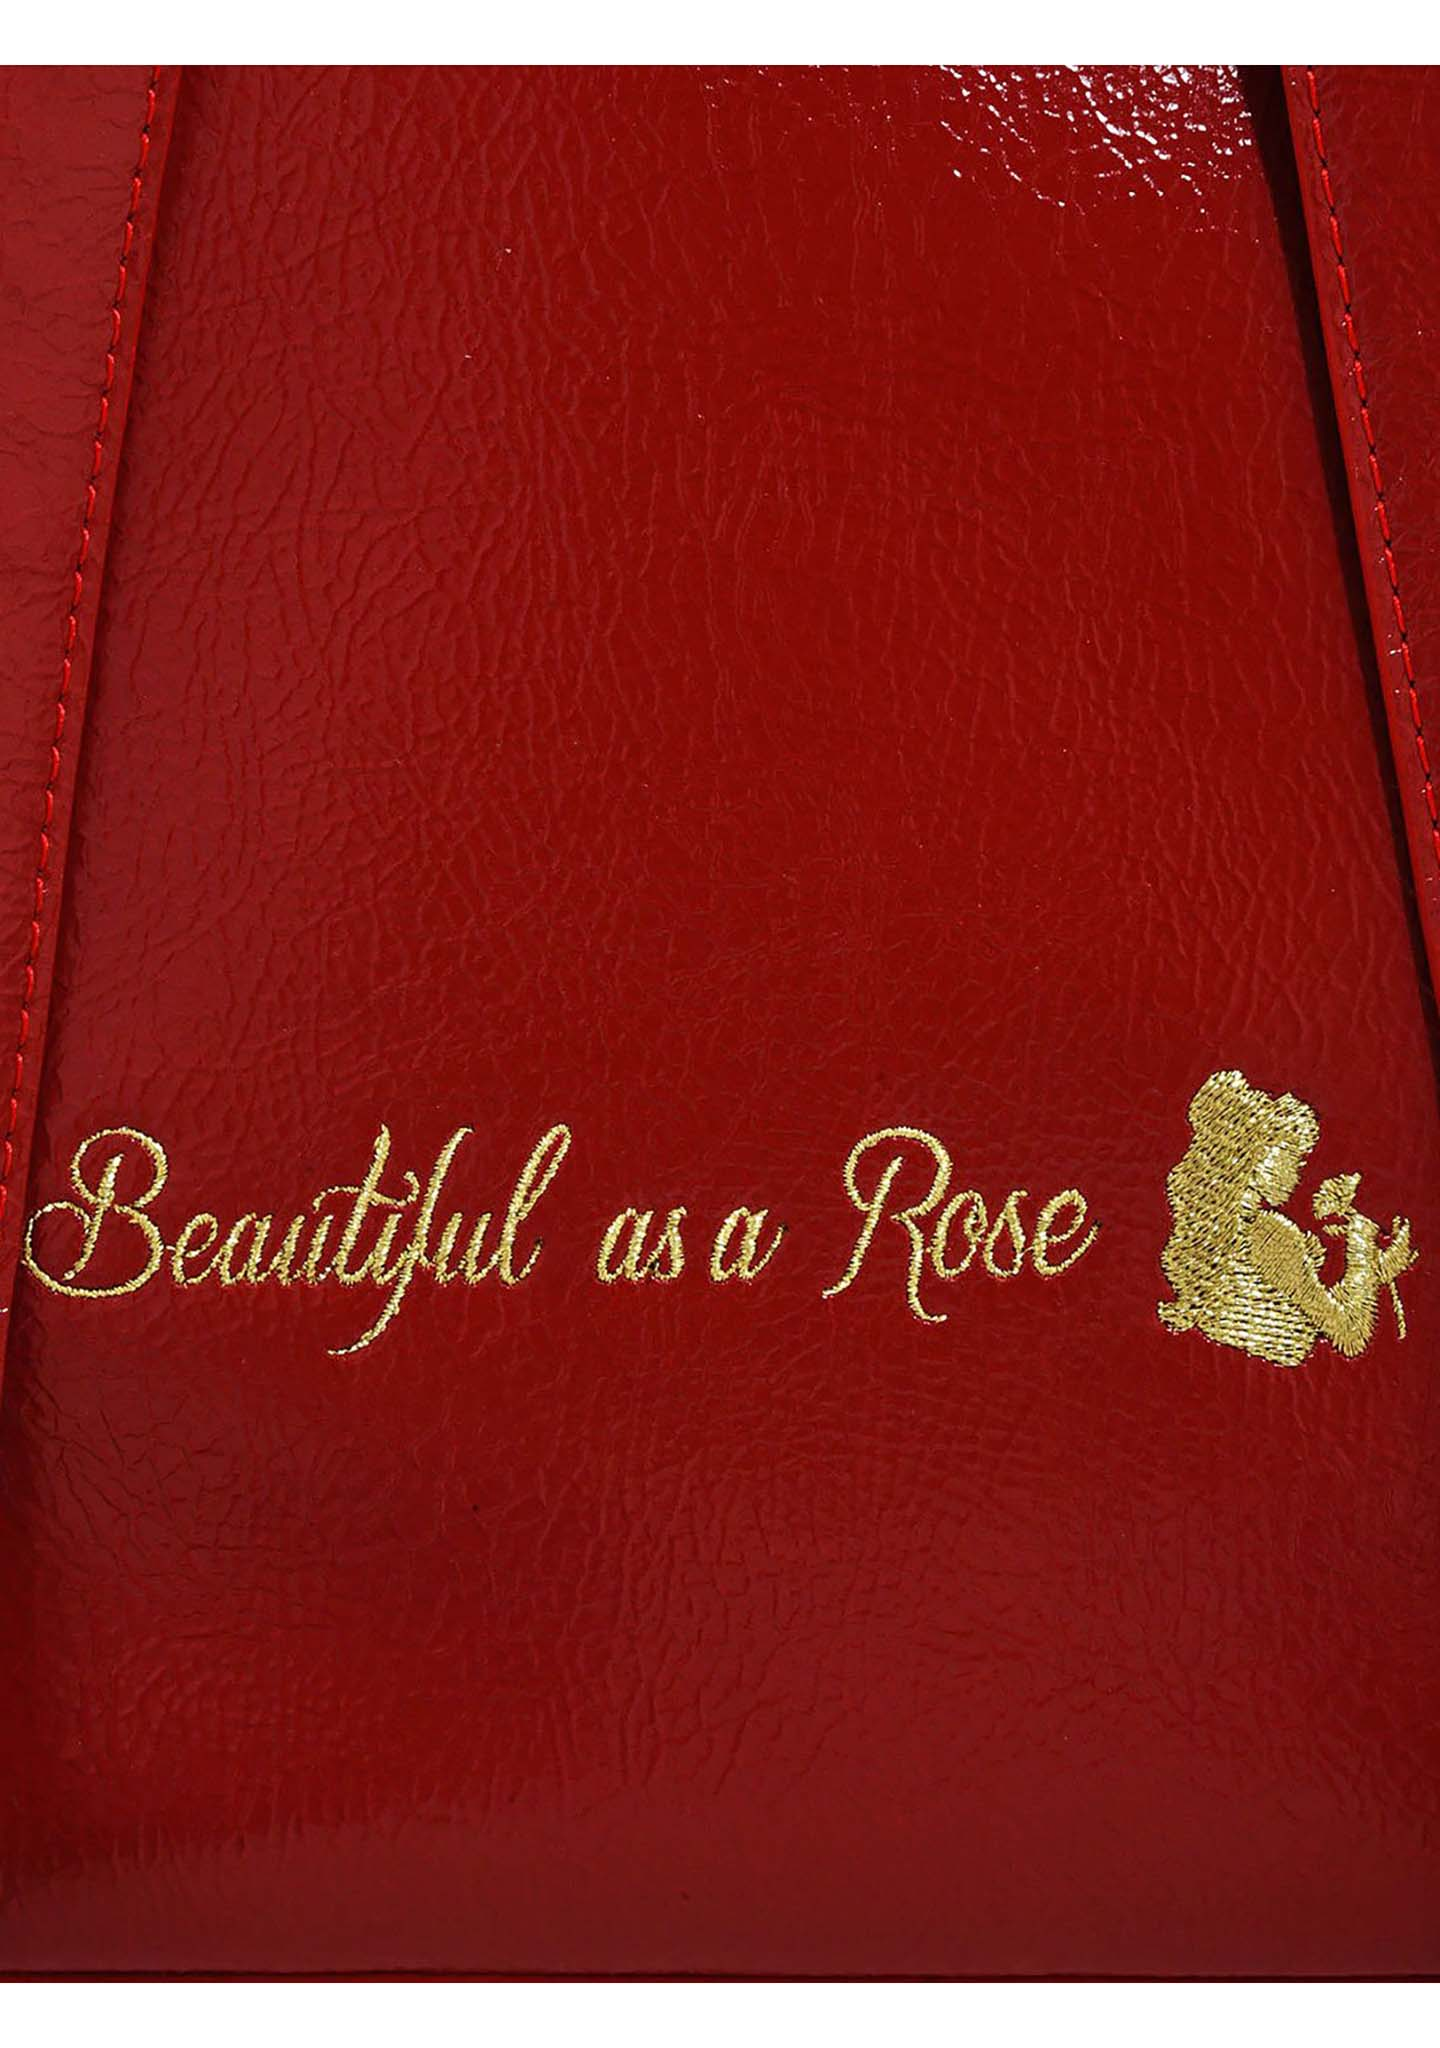 X Disney Beauty and the Beast Rose Backpack